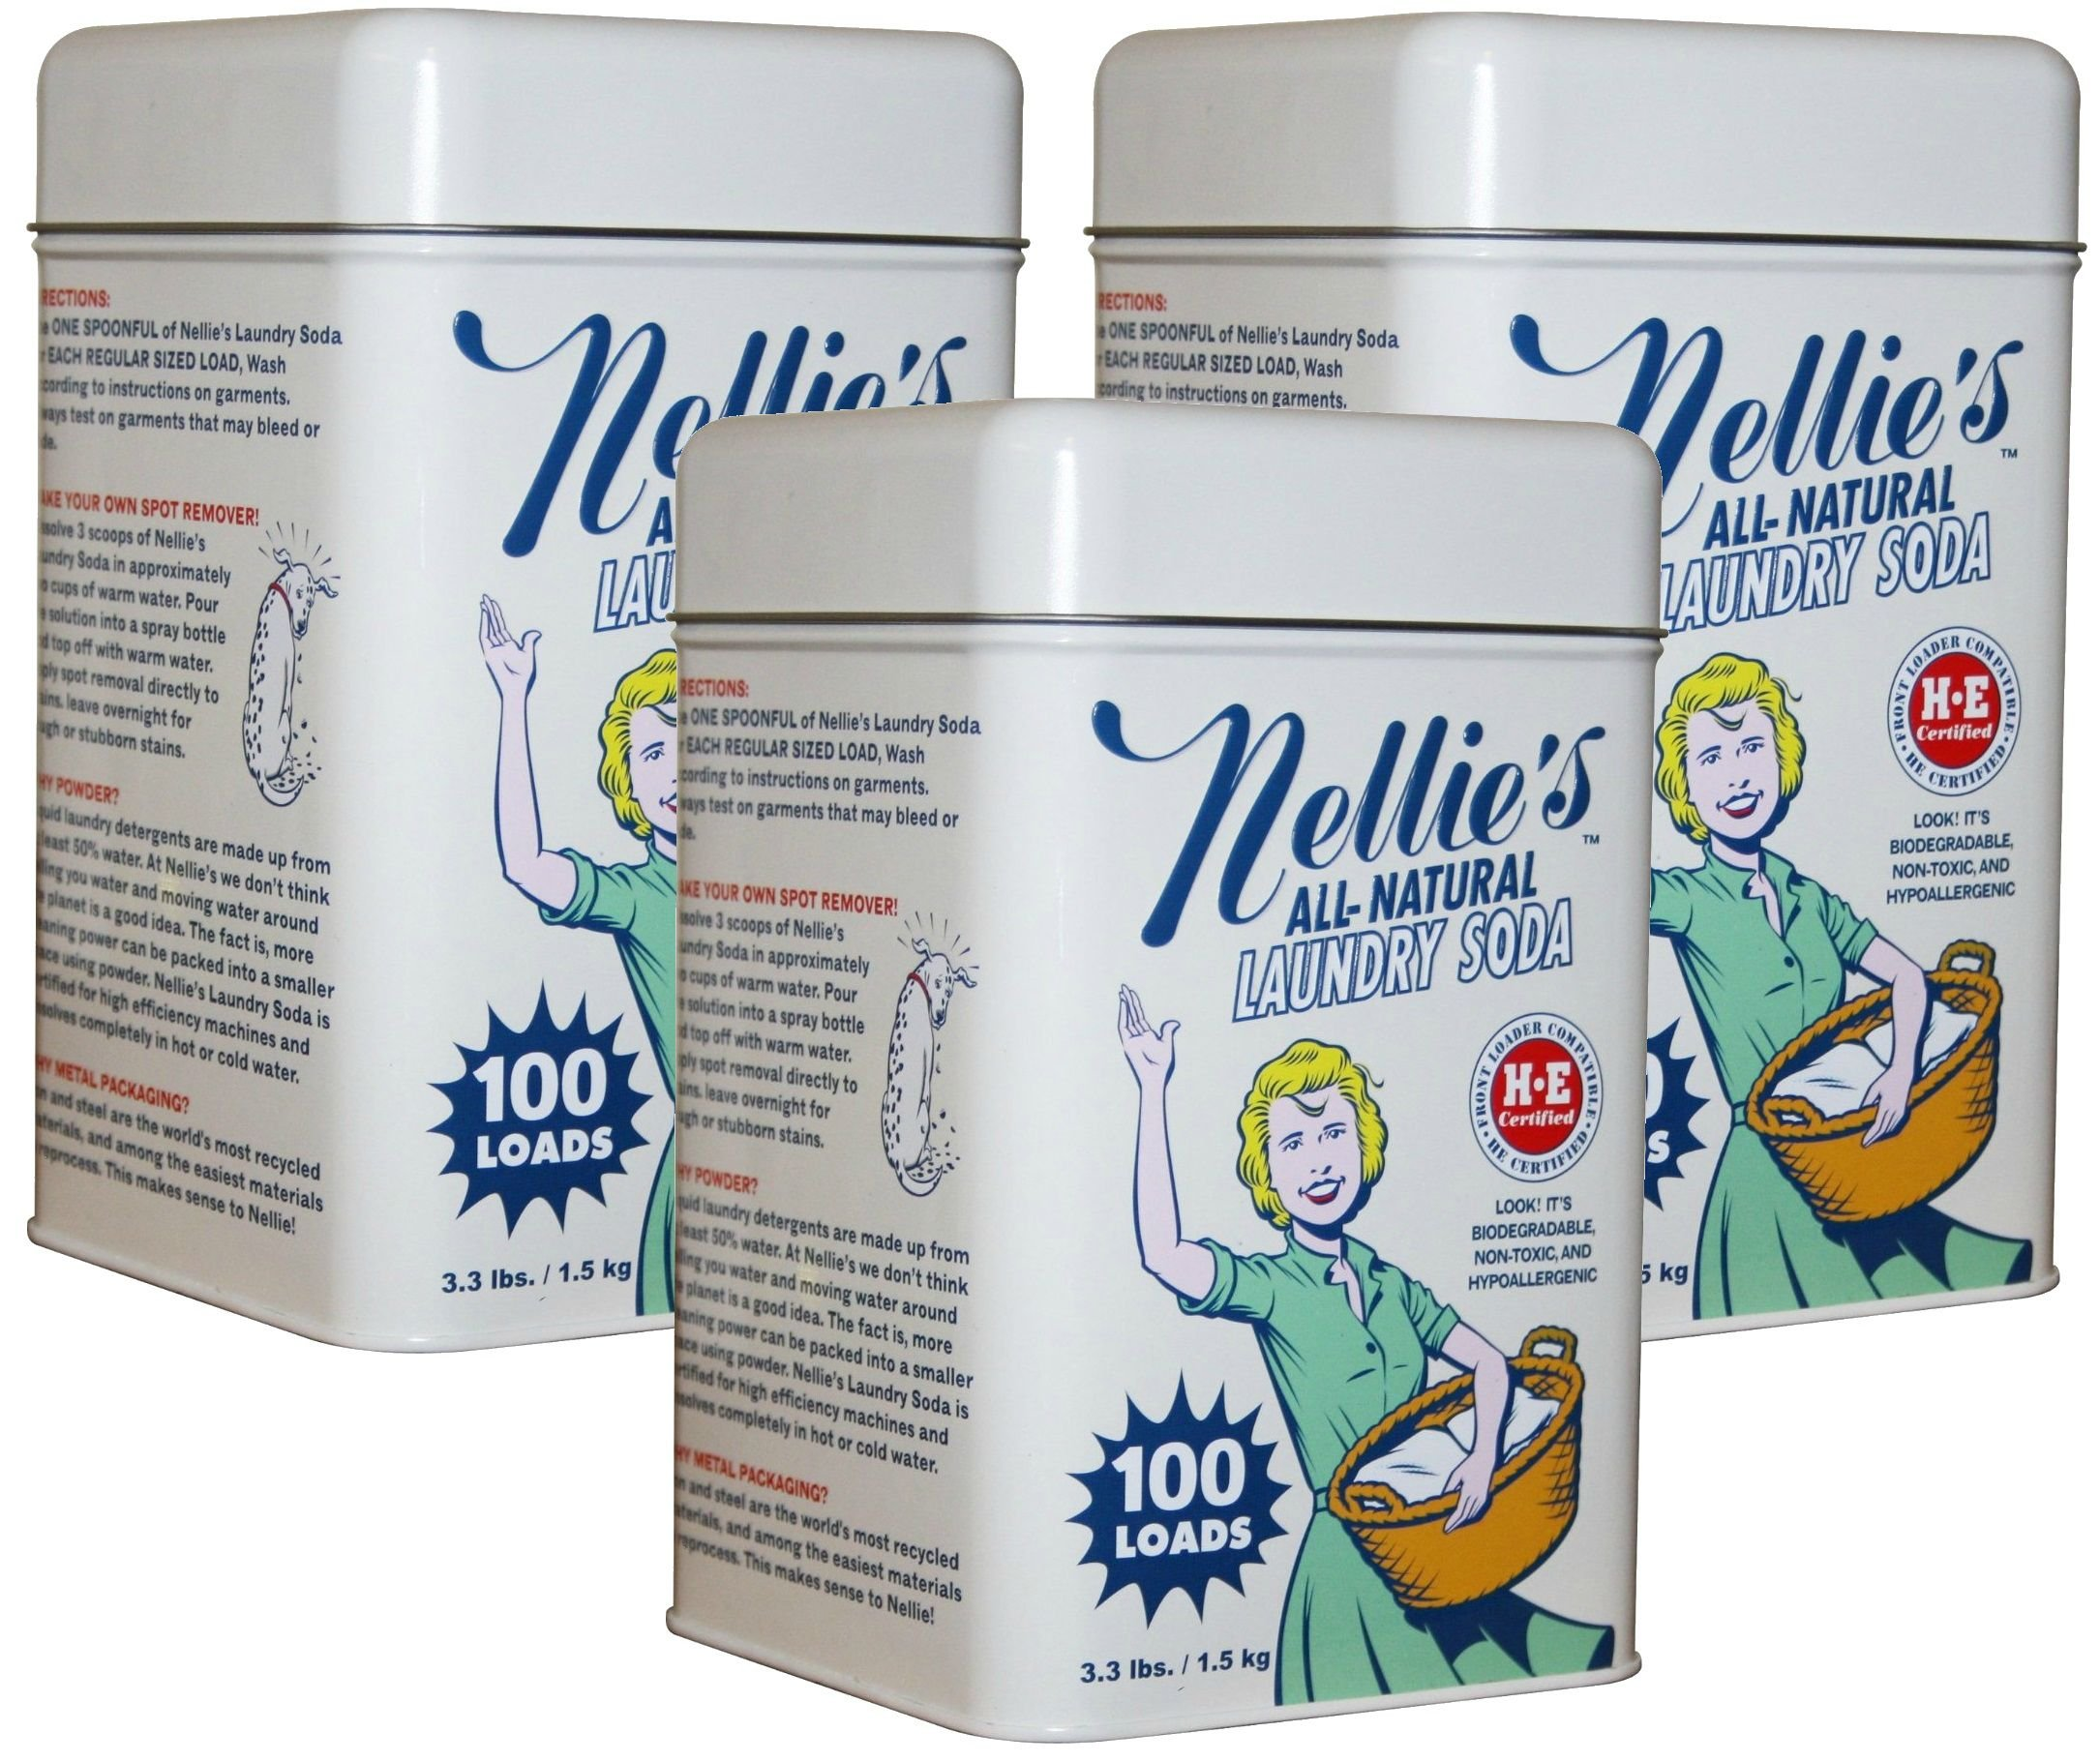 Nellies All Natural Powder Laundry Detergent Soda, 100 Load Tin 3 Pack Non Toxic, Biodegradable, Hypoallergenic, Vegan, Leaping Bunny Certified